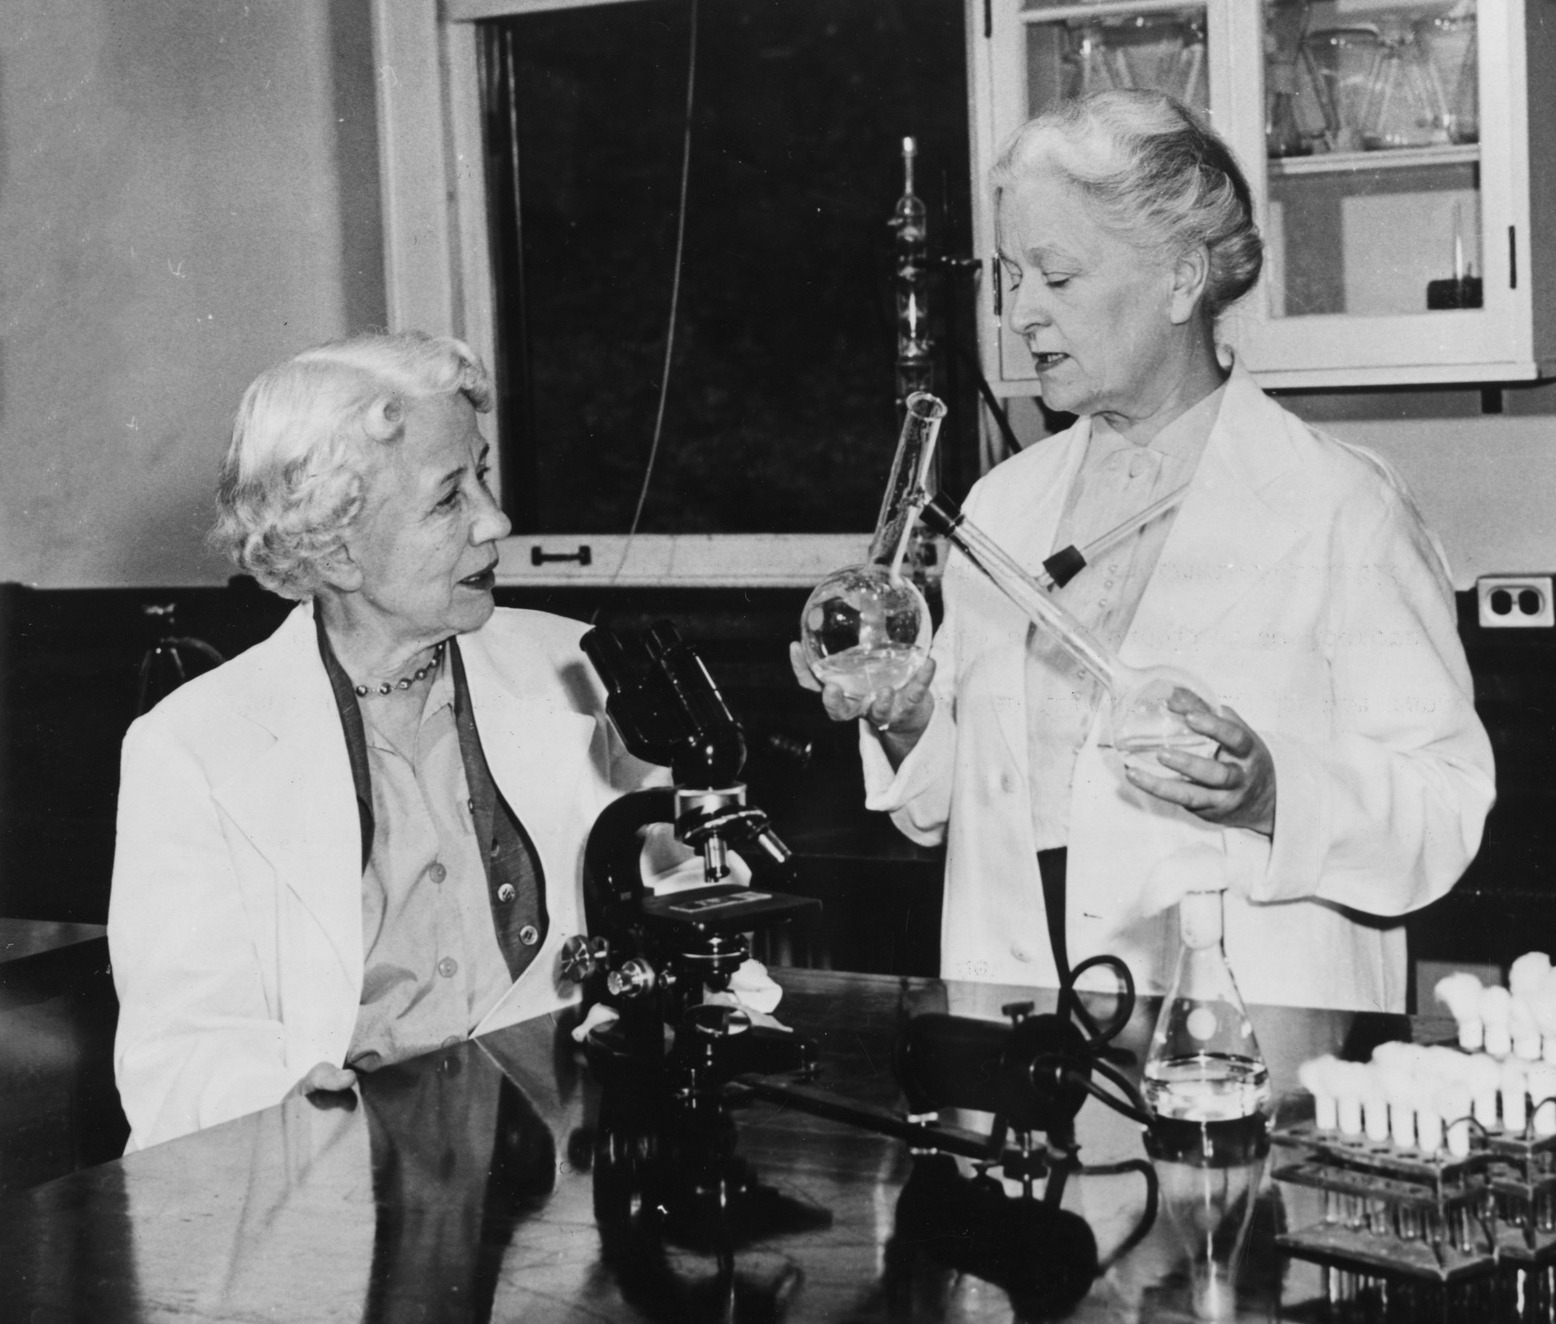 Elizabeth Lee Hazen and Rachel Brown  By Smithsonian Institution - Flickr: Elizabeth Lee Hazen (1888-1975) and Rachel Brown (1898-1980), No restrictions, https://commons.wikimedia.org/w/index.php?curid=18386483